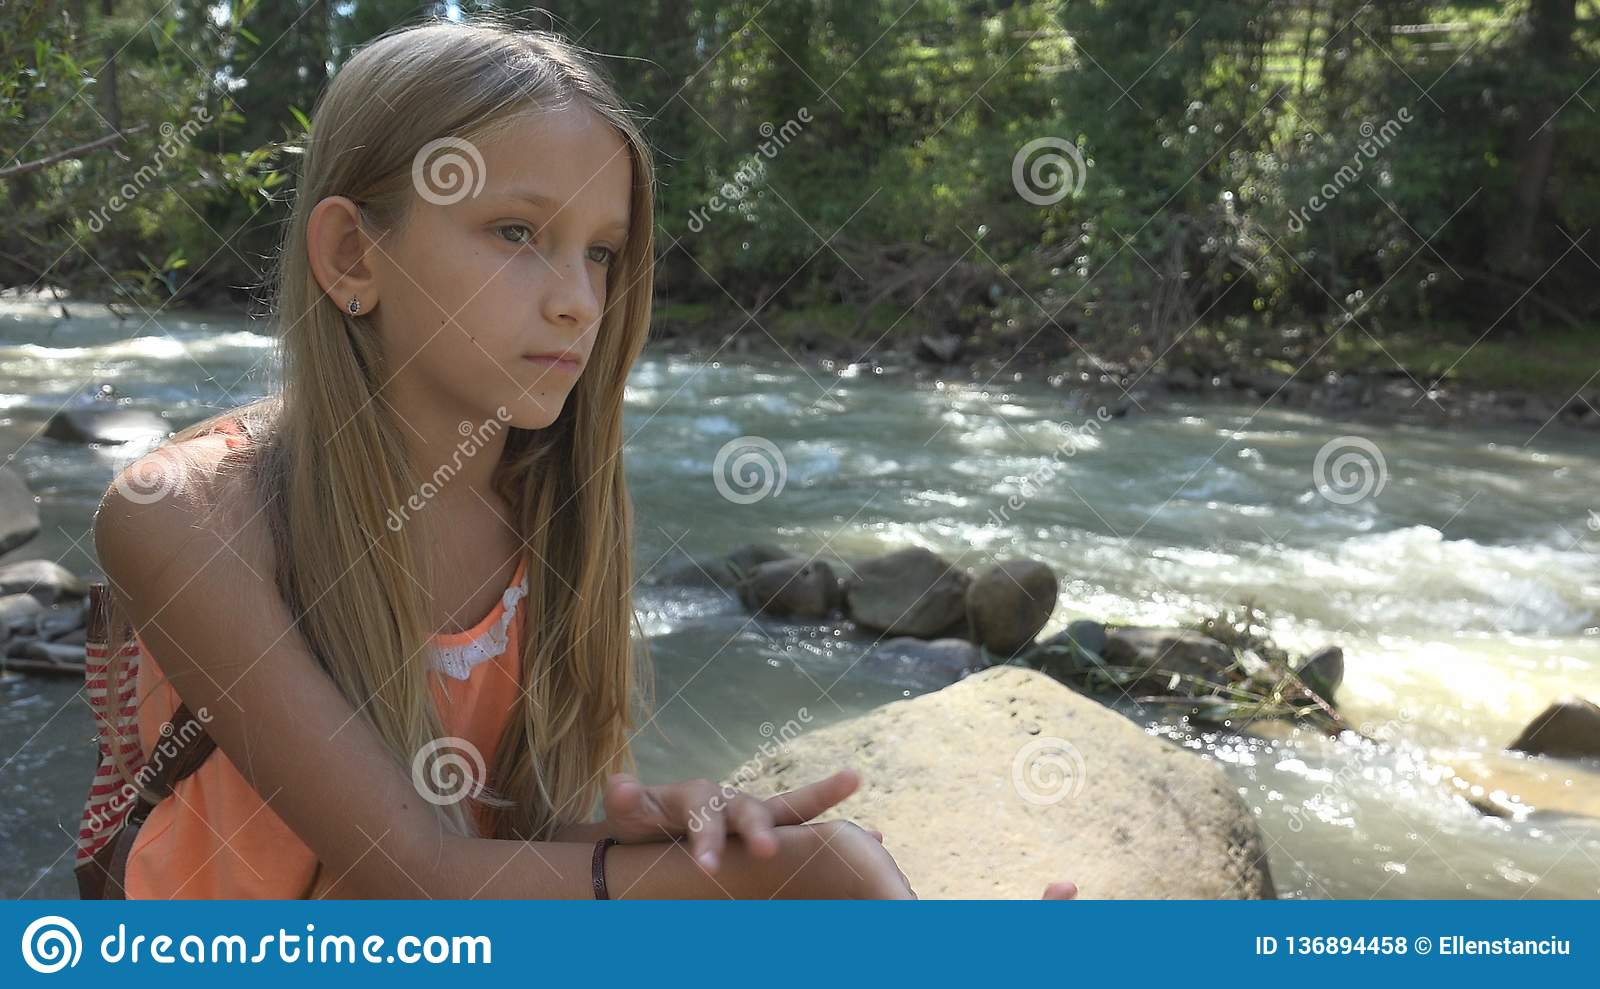 Sad Child by River, Thoughtful Kid Relaxing in Nature, Girl in Camping, Mountain